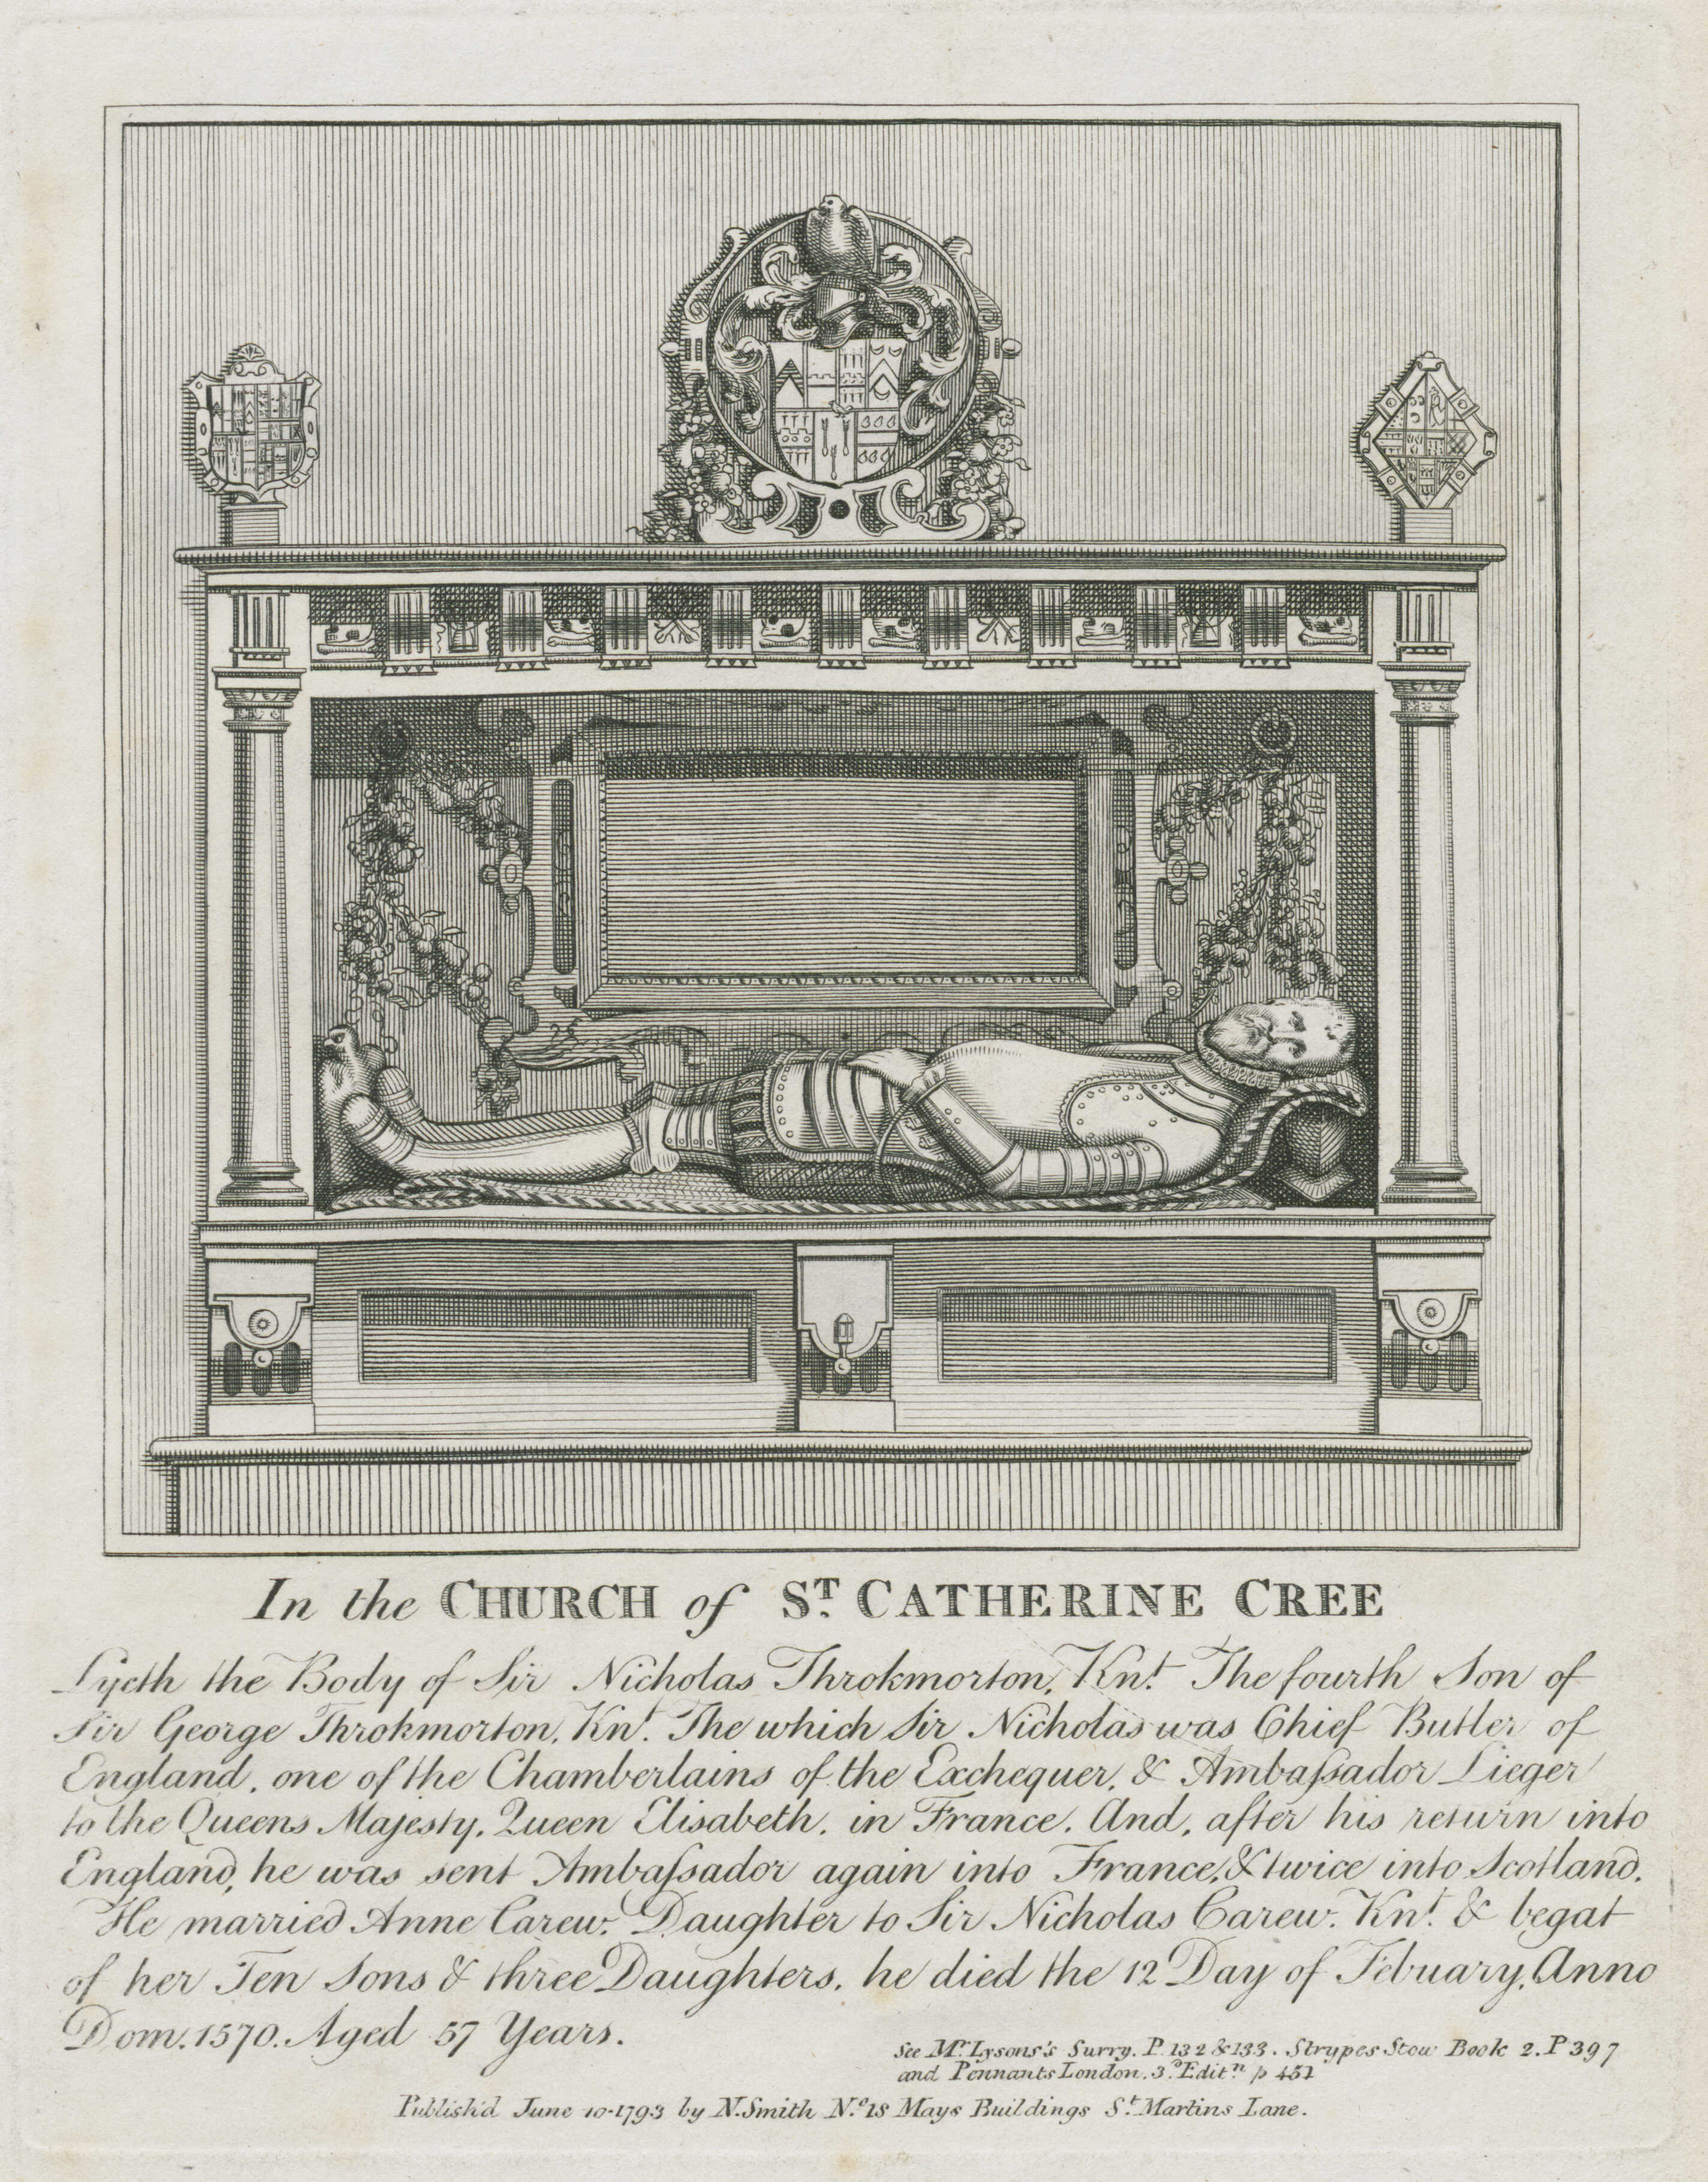 44-in-the-church-of-st-catherine-cree-monument-for-sir-nicholas-throckmorton